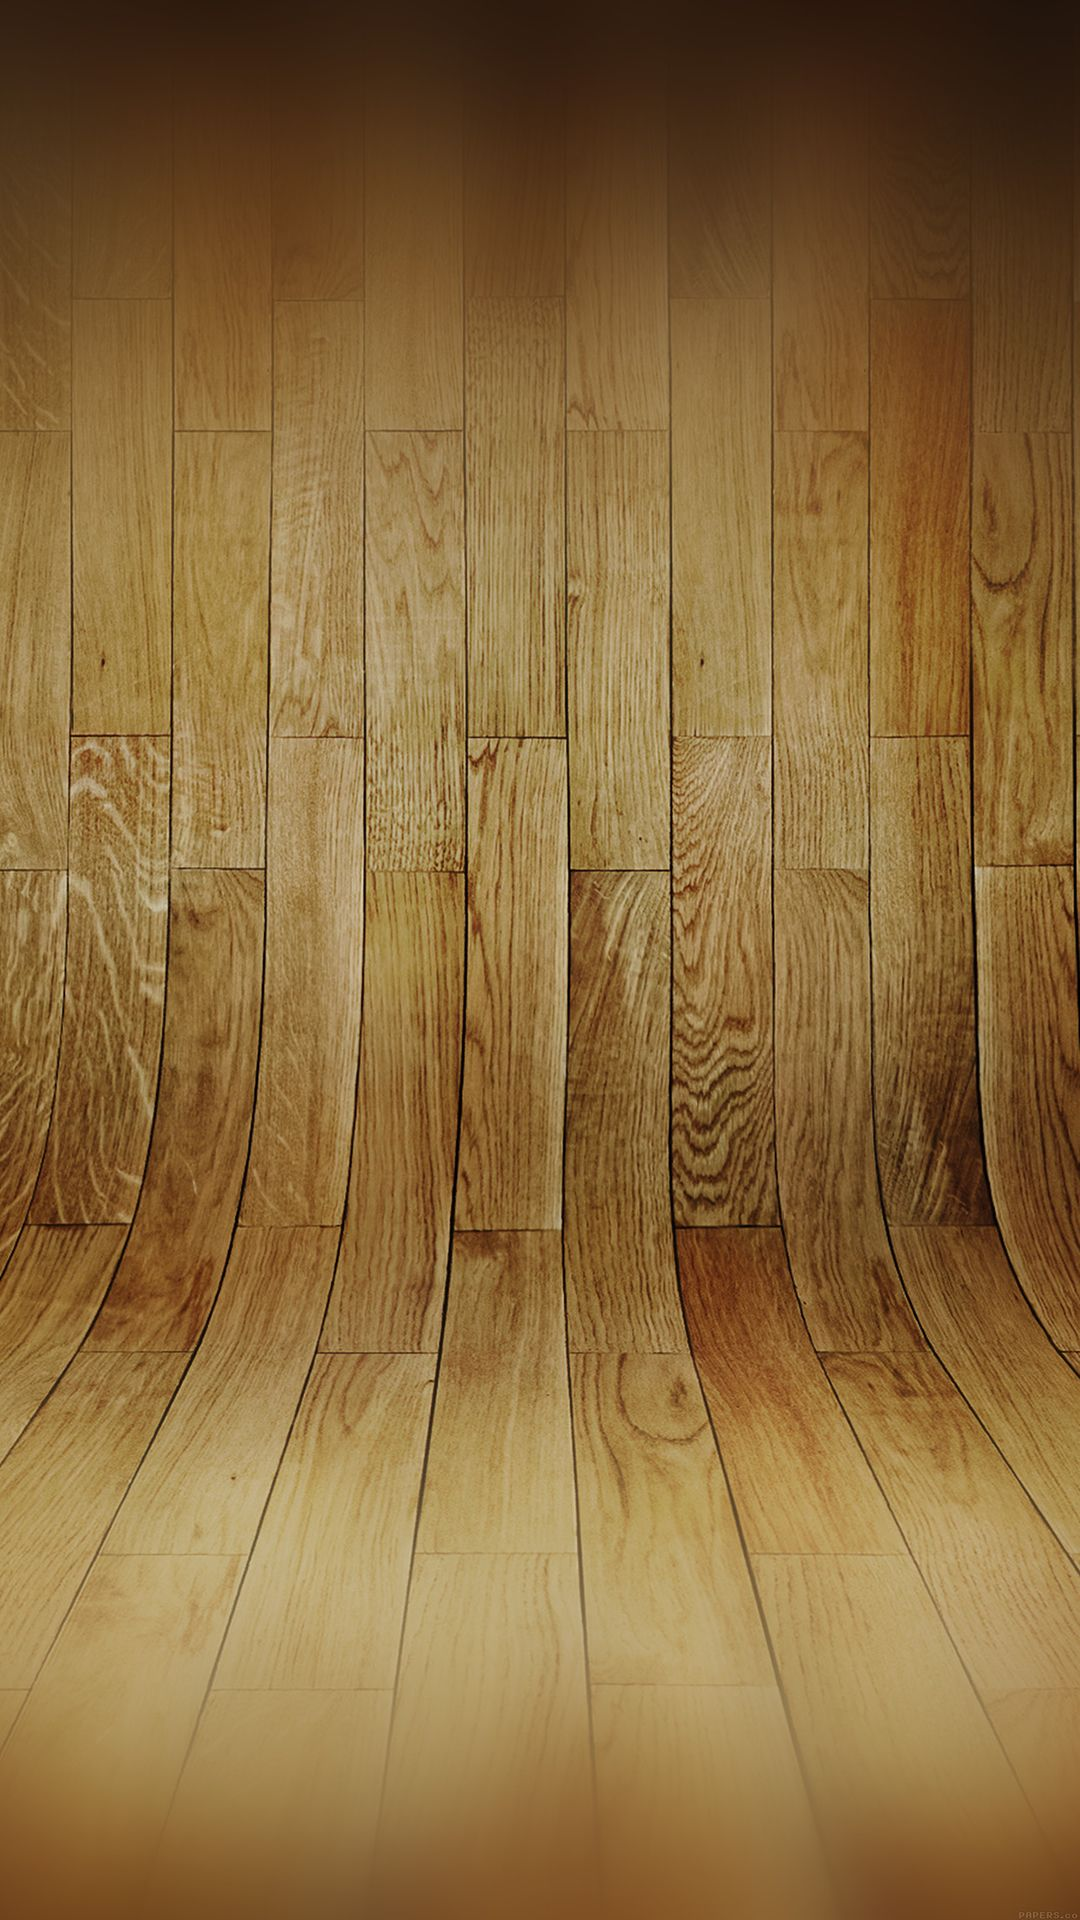 Curved 3D Wood Planks Texture iPhone 6 wallpaper Android